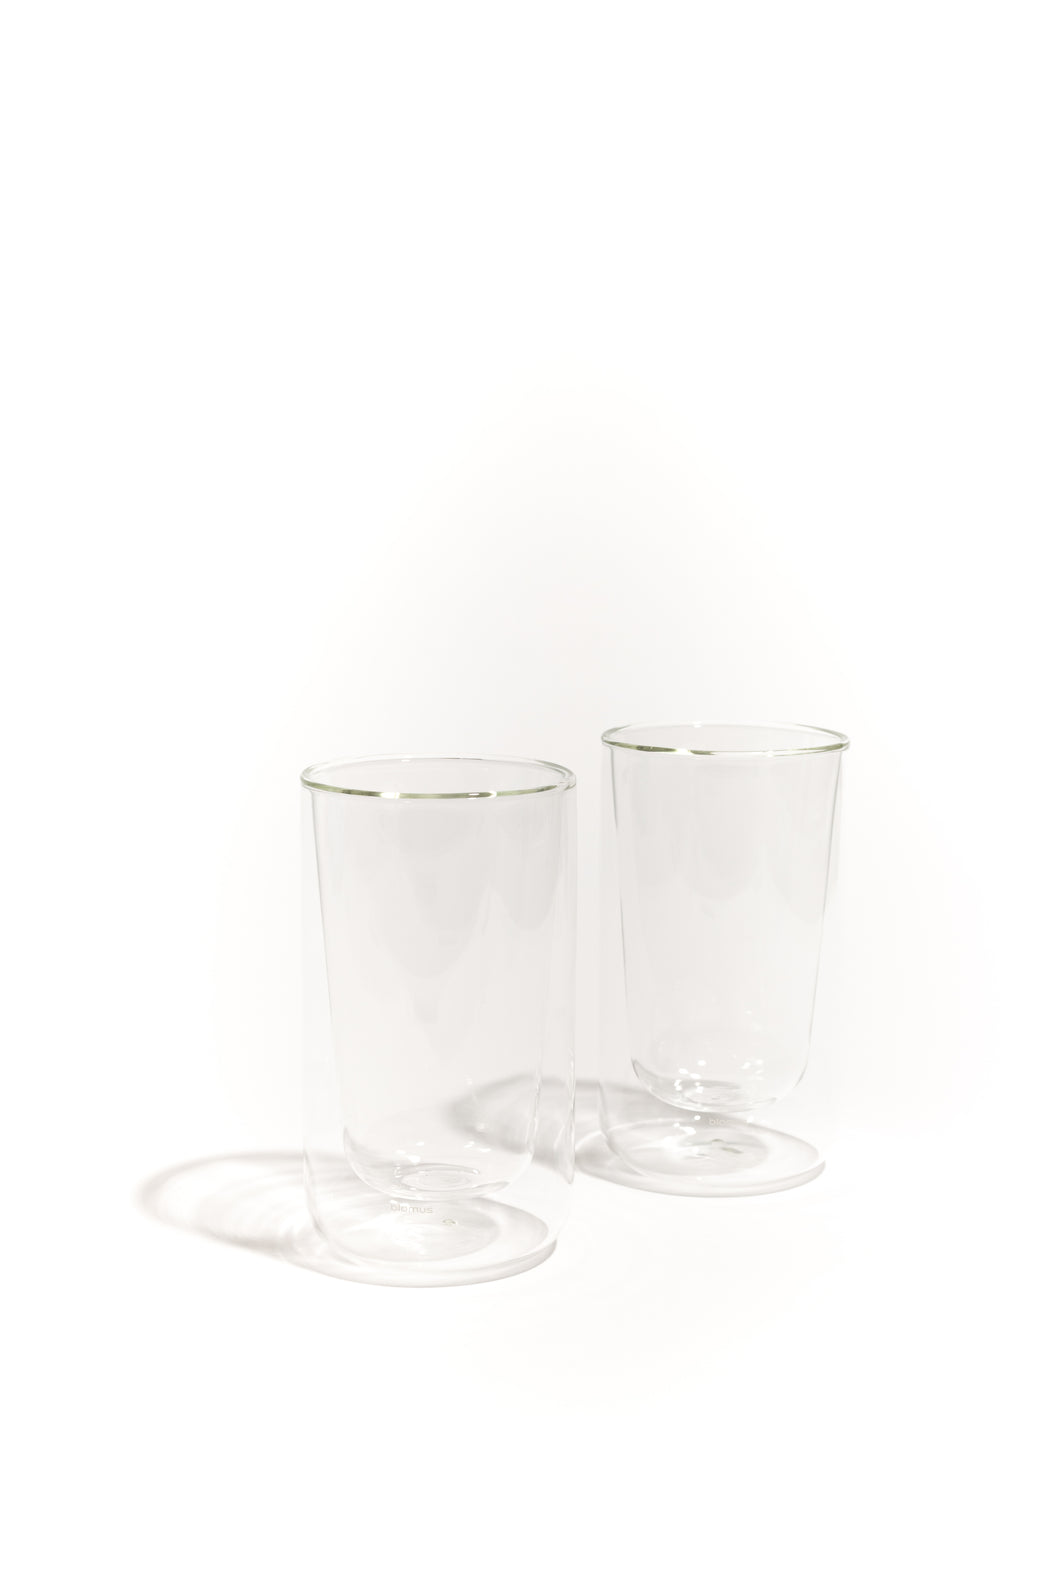 Weston - Insulated Glass - 11 Ounce